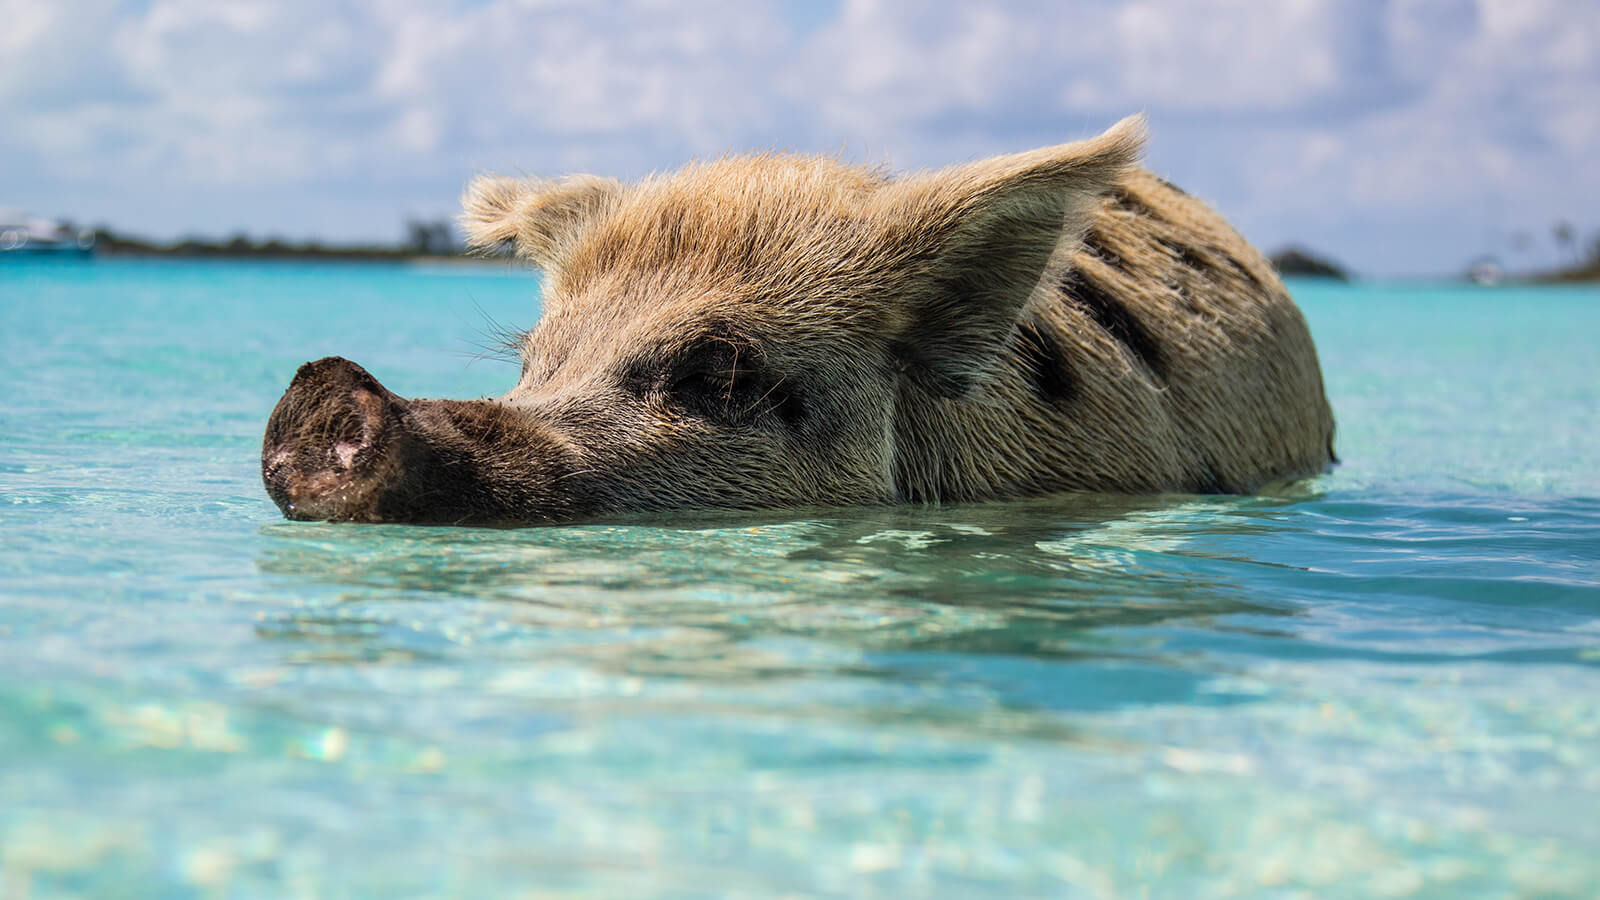 Bahamas pig swimming near the beach